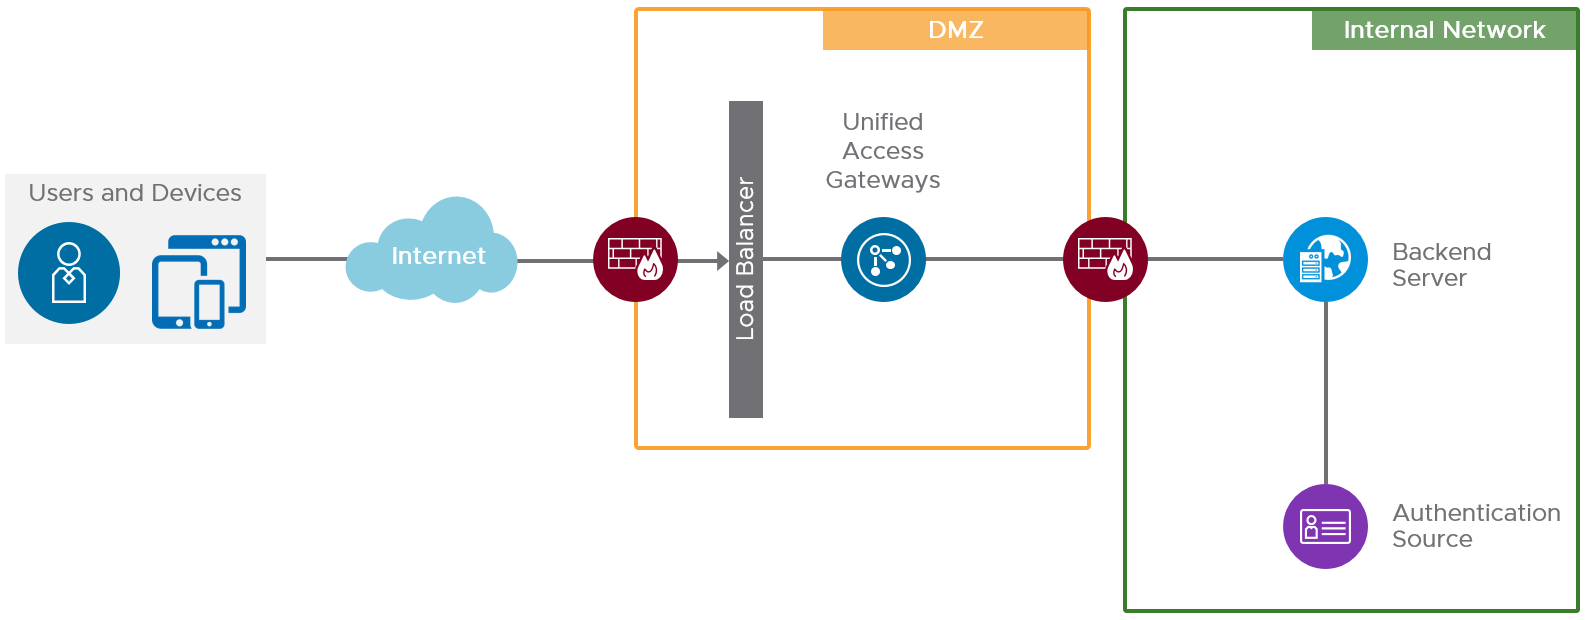 Unified Access Gateway Pass-Through Authentication